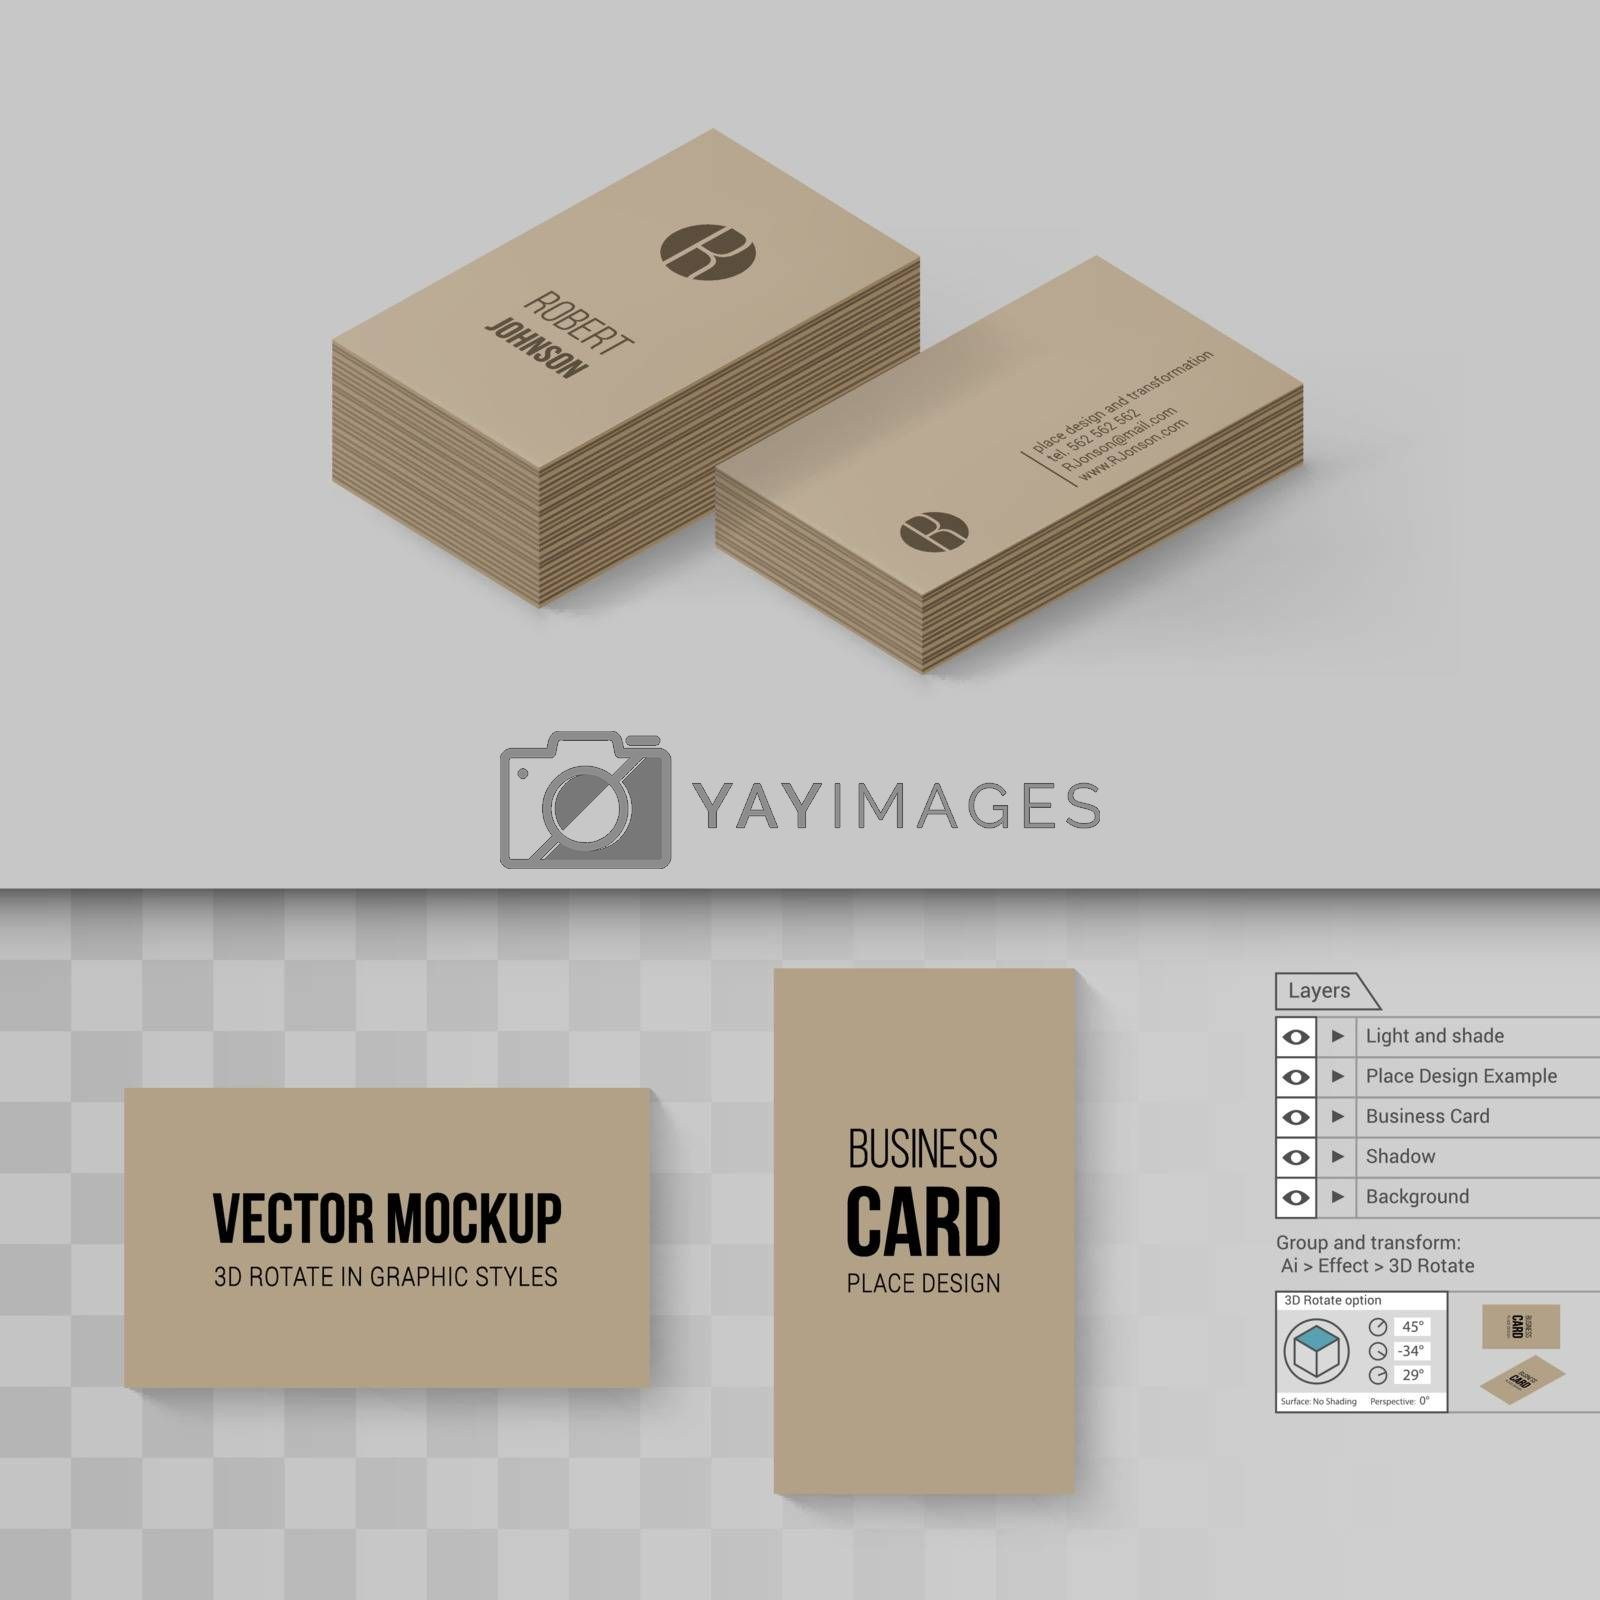 Brown Business Cards Template. Branding Mock Up with 3D Rotate Options